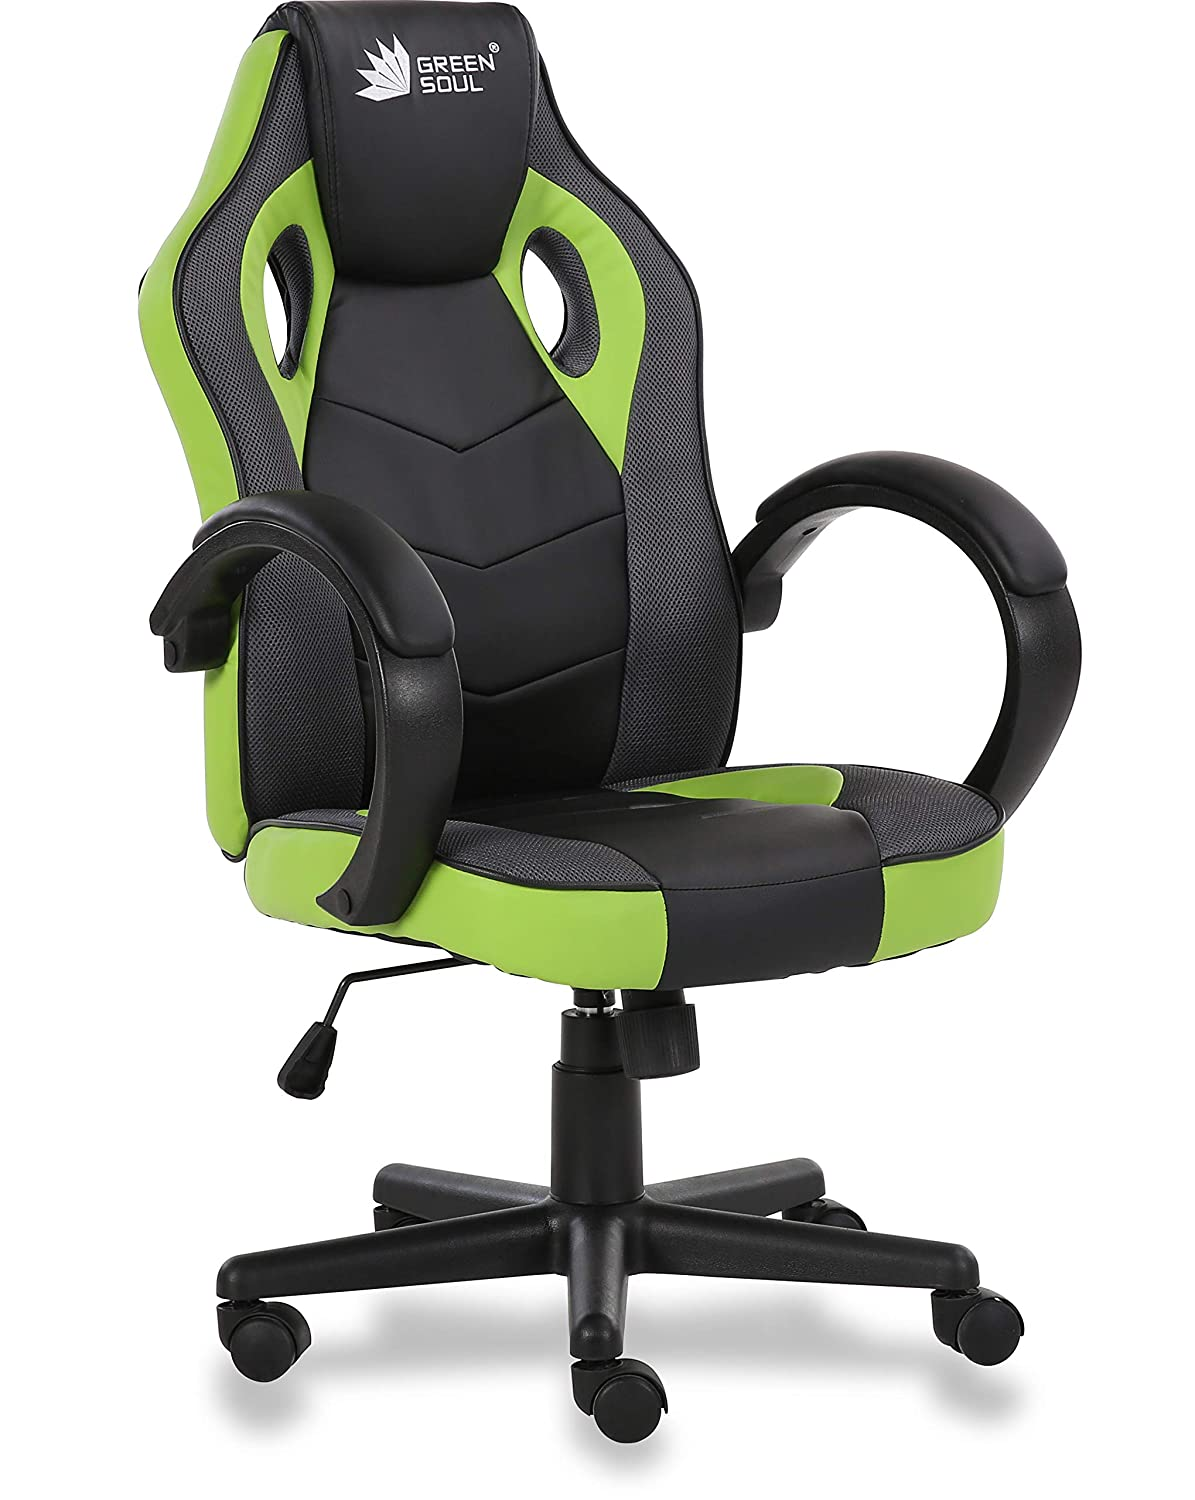 Best Gaming Chair In India 2021